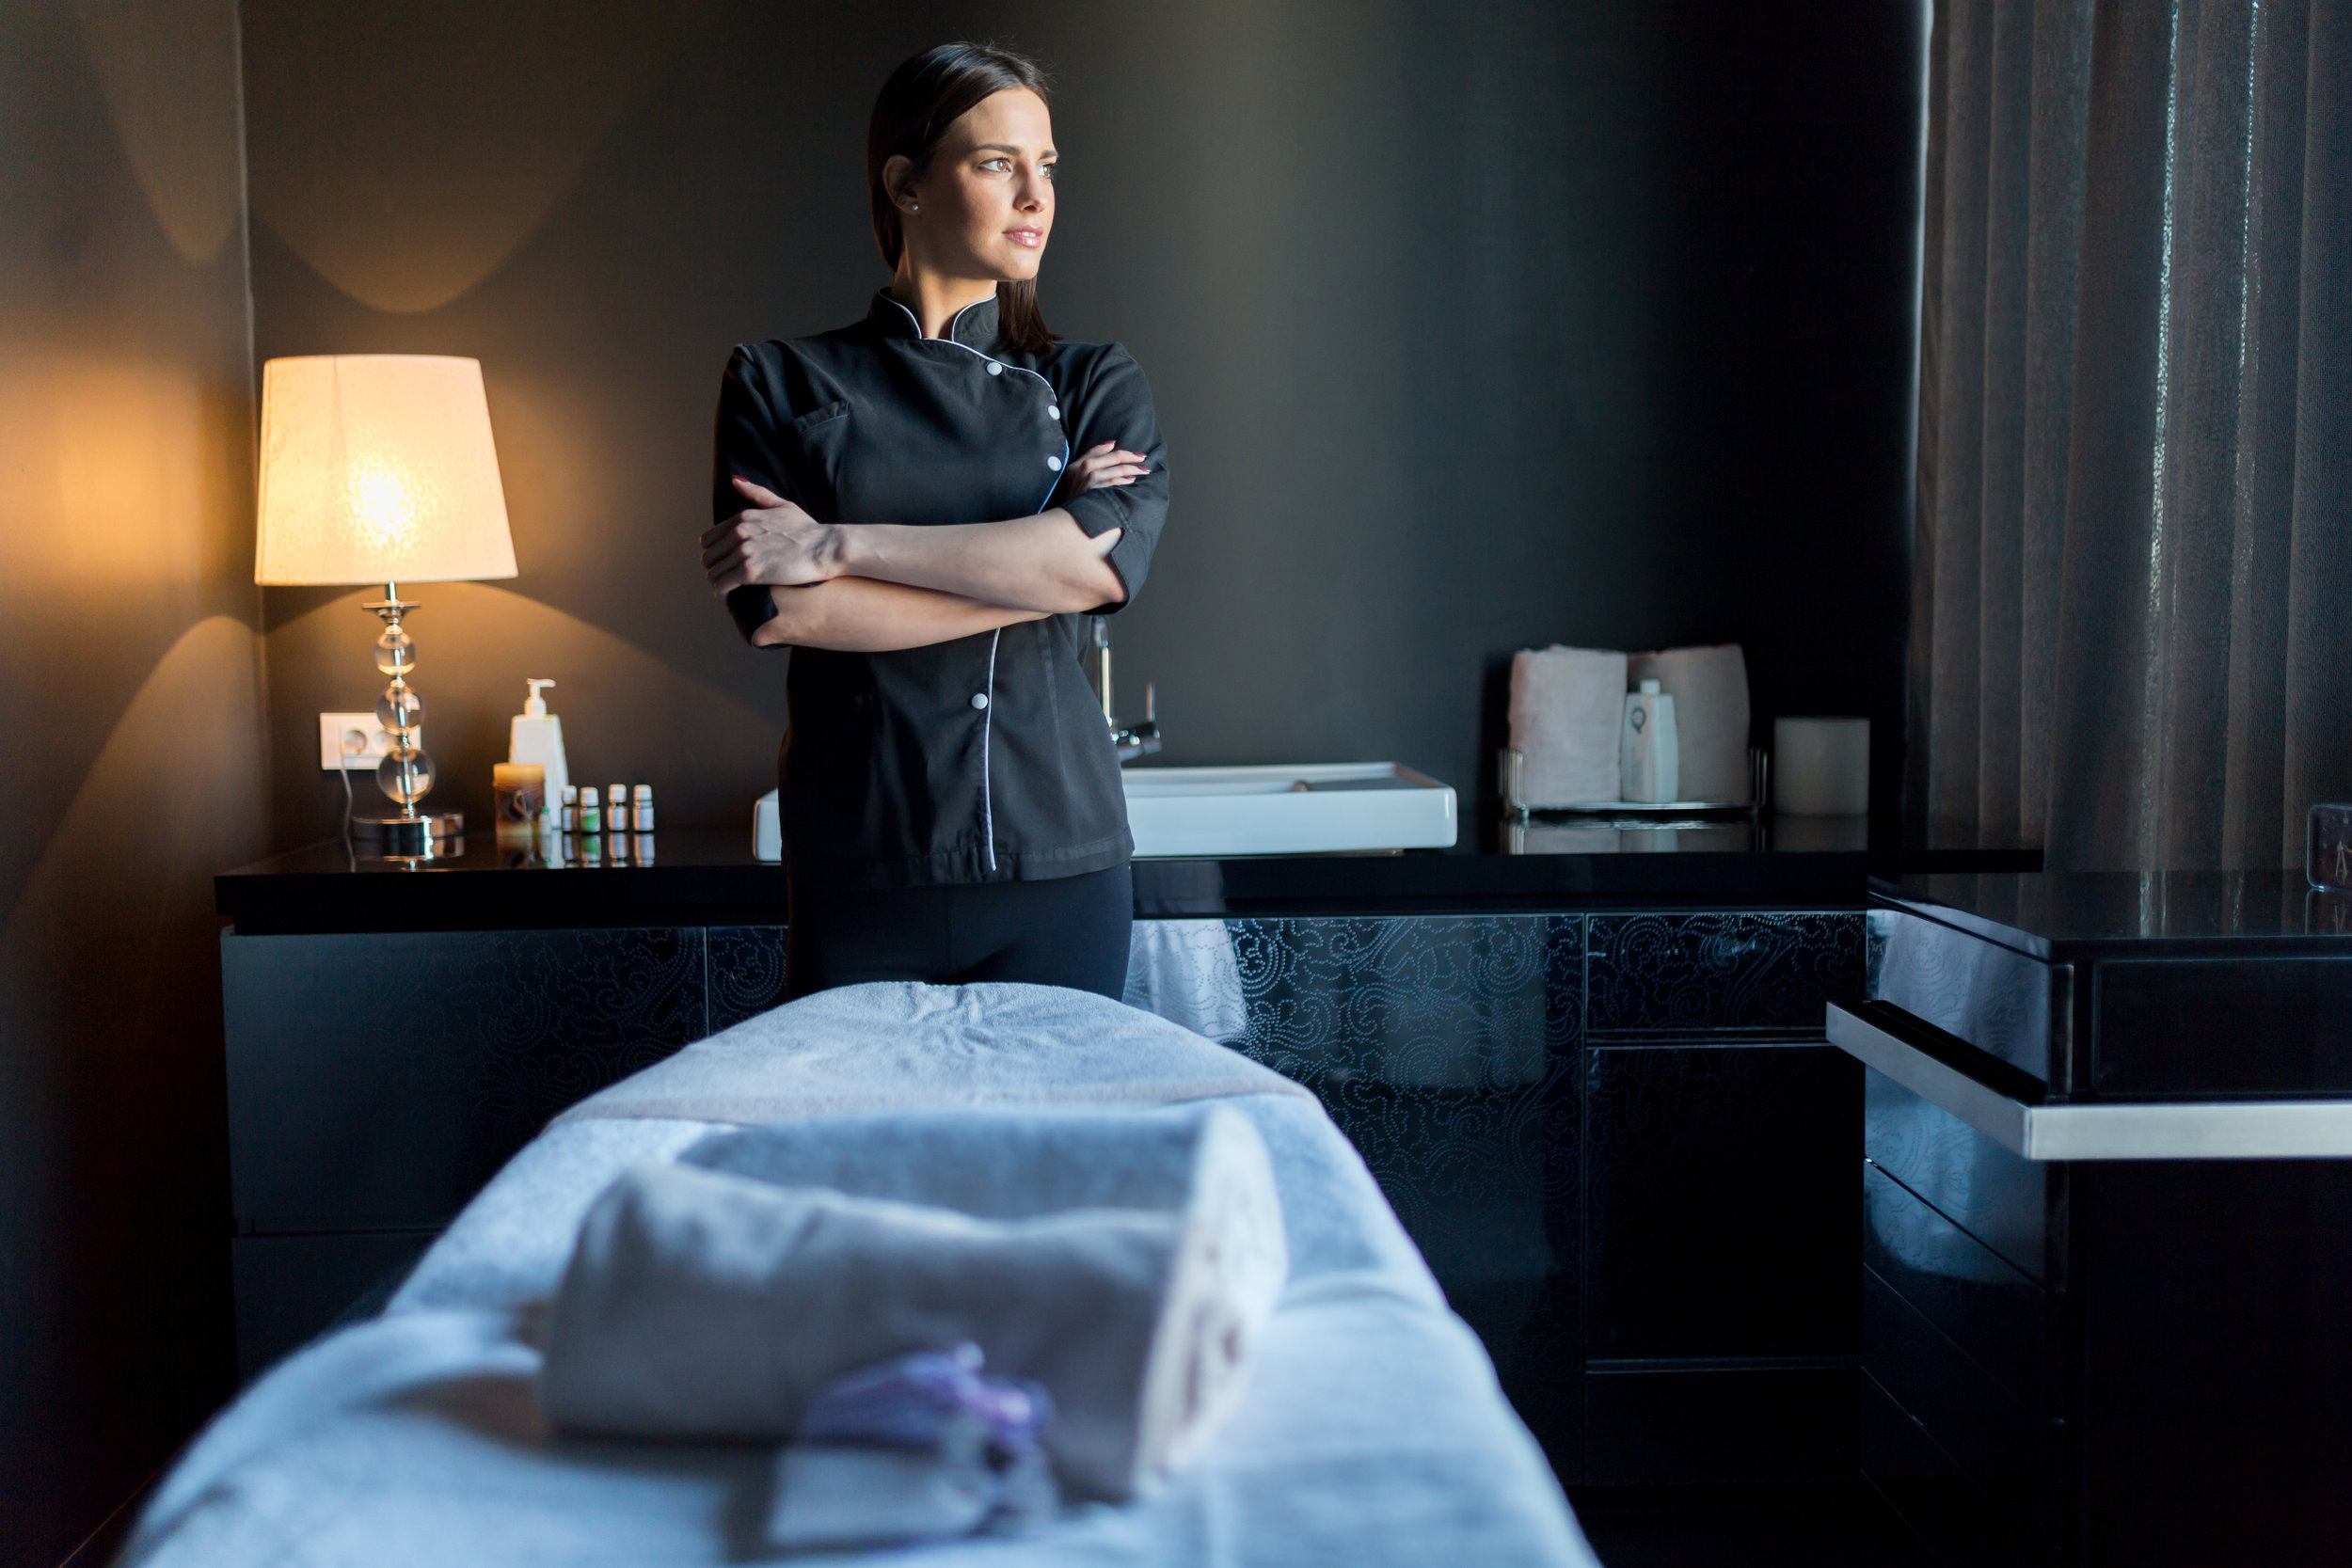 Start a rewarding career today! - Financial Aid available for those who qualify. Enroll today!The 750 hour curriculum will allow the graduate to apply for licensing in almost any state in the country.20 minutes from Spokane & 10 minutes from Coeur d'Alene and Hayden.Learn how to give a spa treatment as well as learn medical massage treatments for injuries, recovery and sports massage.Beautiful campus with lots of parking, amazing sunsets and views.